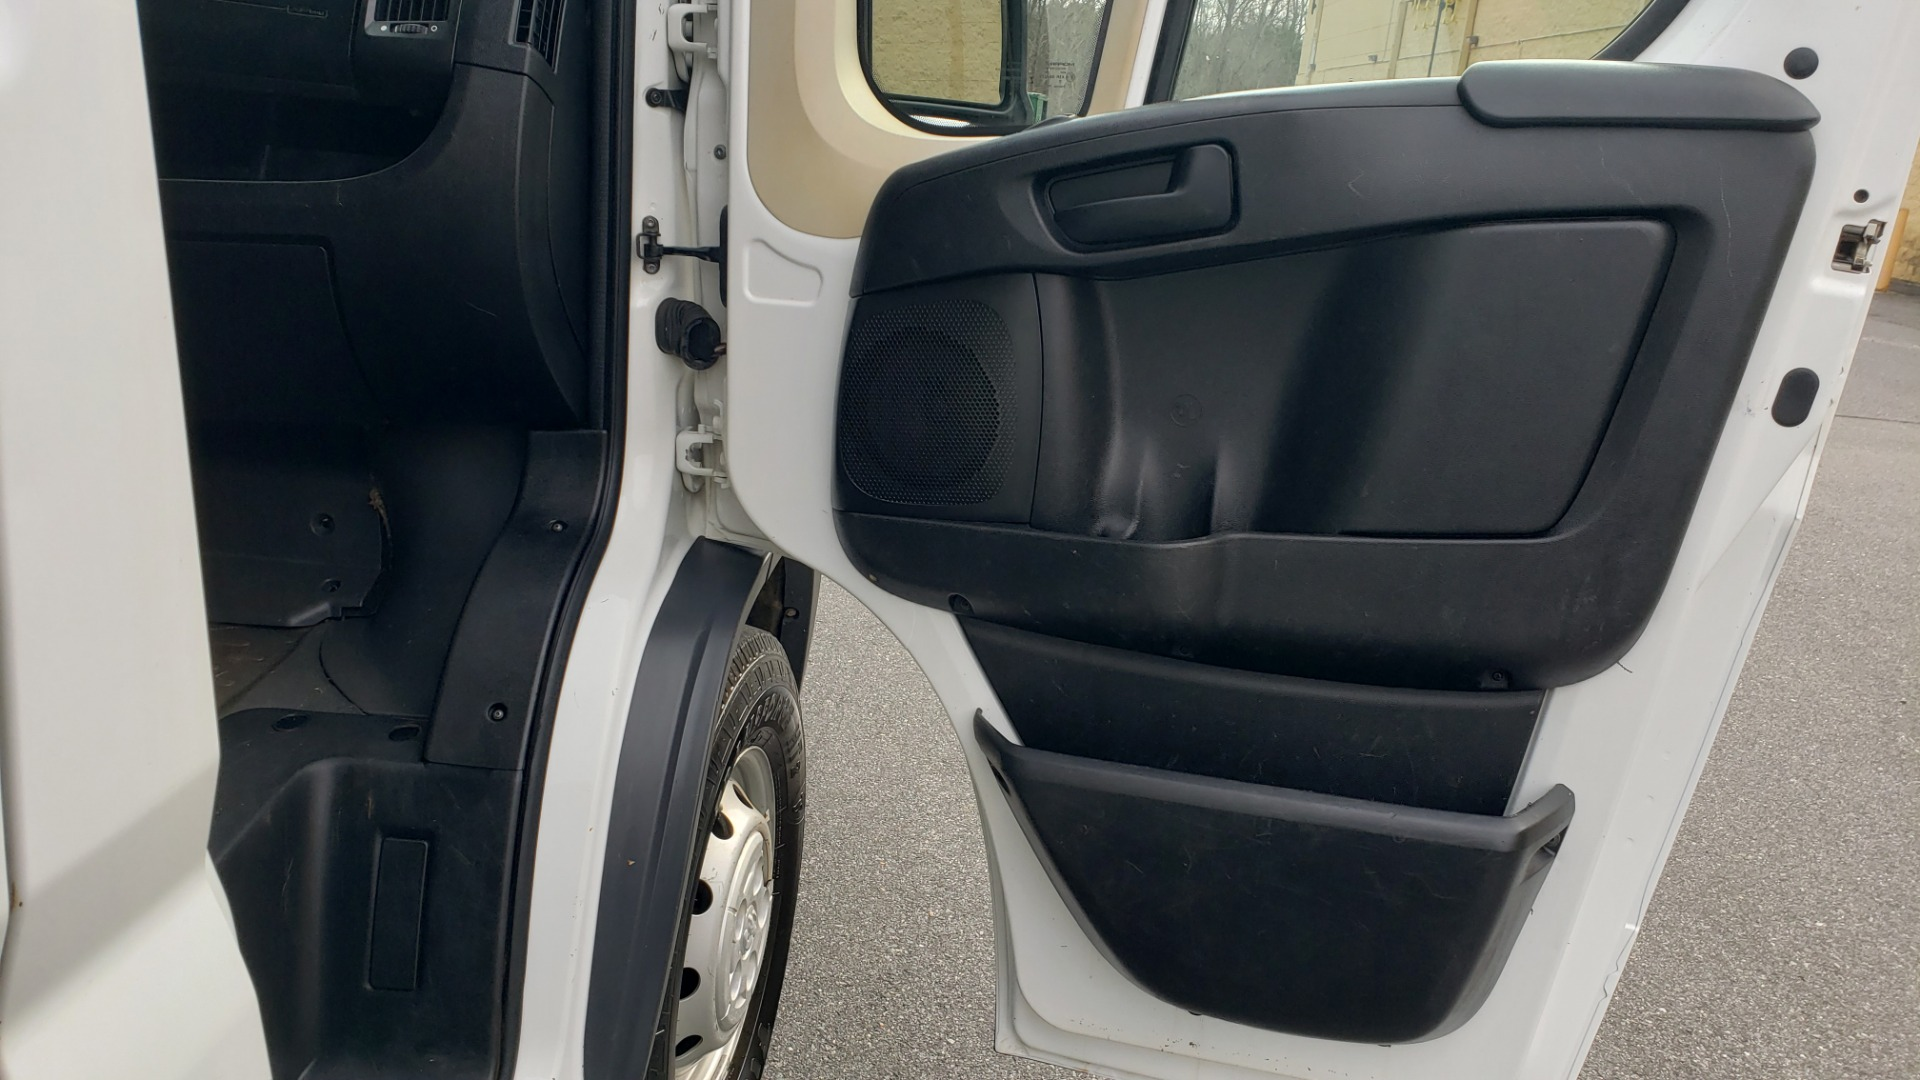 Used 2016 Ram PROMASTER CARGO VAN 136 WB / LOW ROOF / 3.6L V6 / 6-SPD AUTO / REARVIEW for sale $17,500 at Formula Imports in Charlotte NC 28227 35